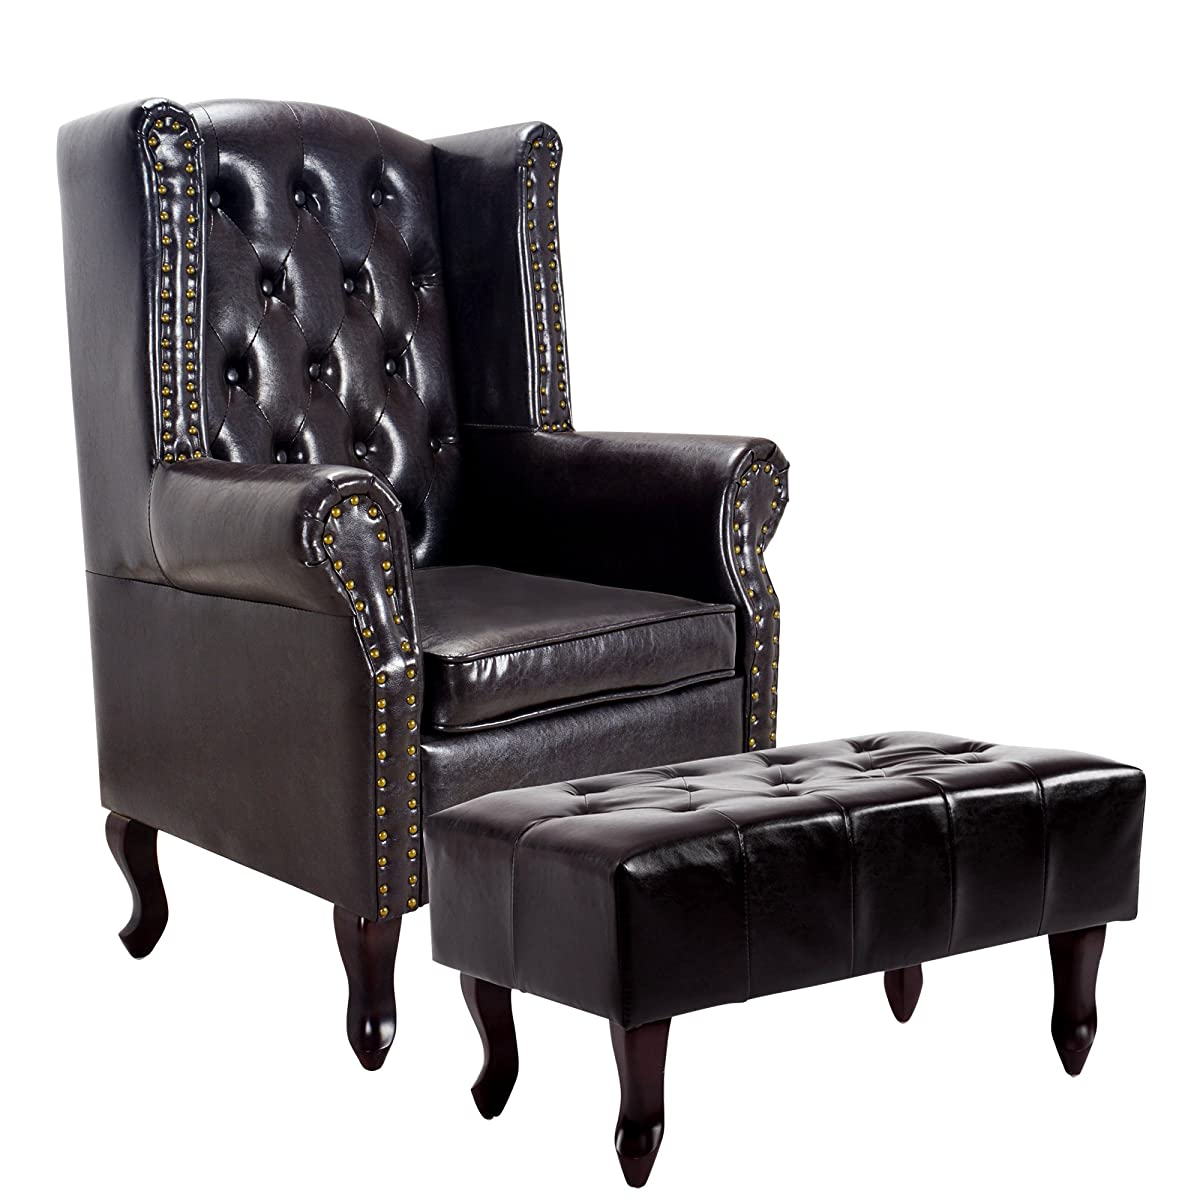 Cloud Mountain Tufted Accent Chair and Ottoman Brown Leather Club Chair Couch